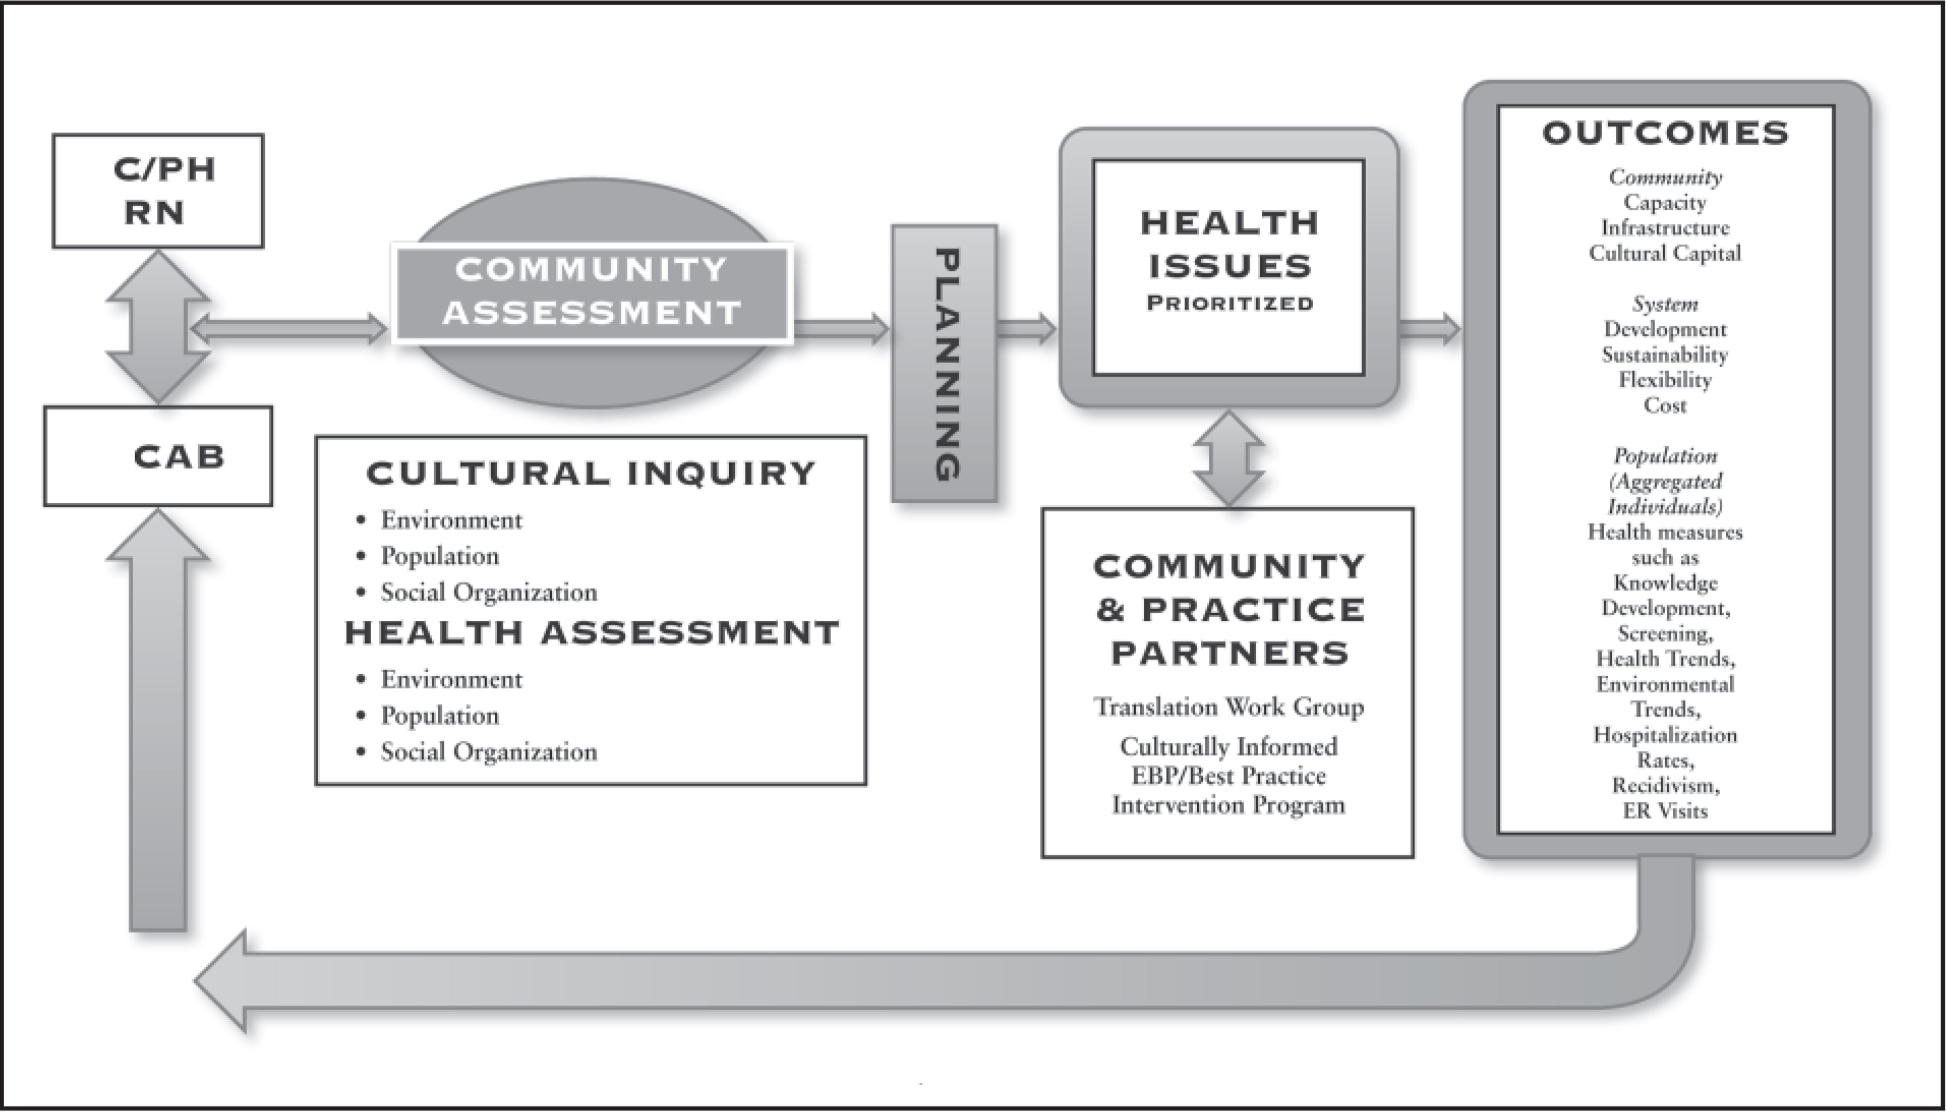 Culturally informed community health research and practice model.Note. C/PH = Community/Public Health; CAB = Community Advisory Board; EBP = evidence-based practice; ER = emergency room.